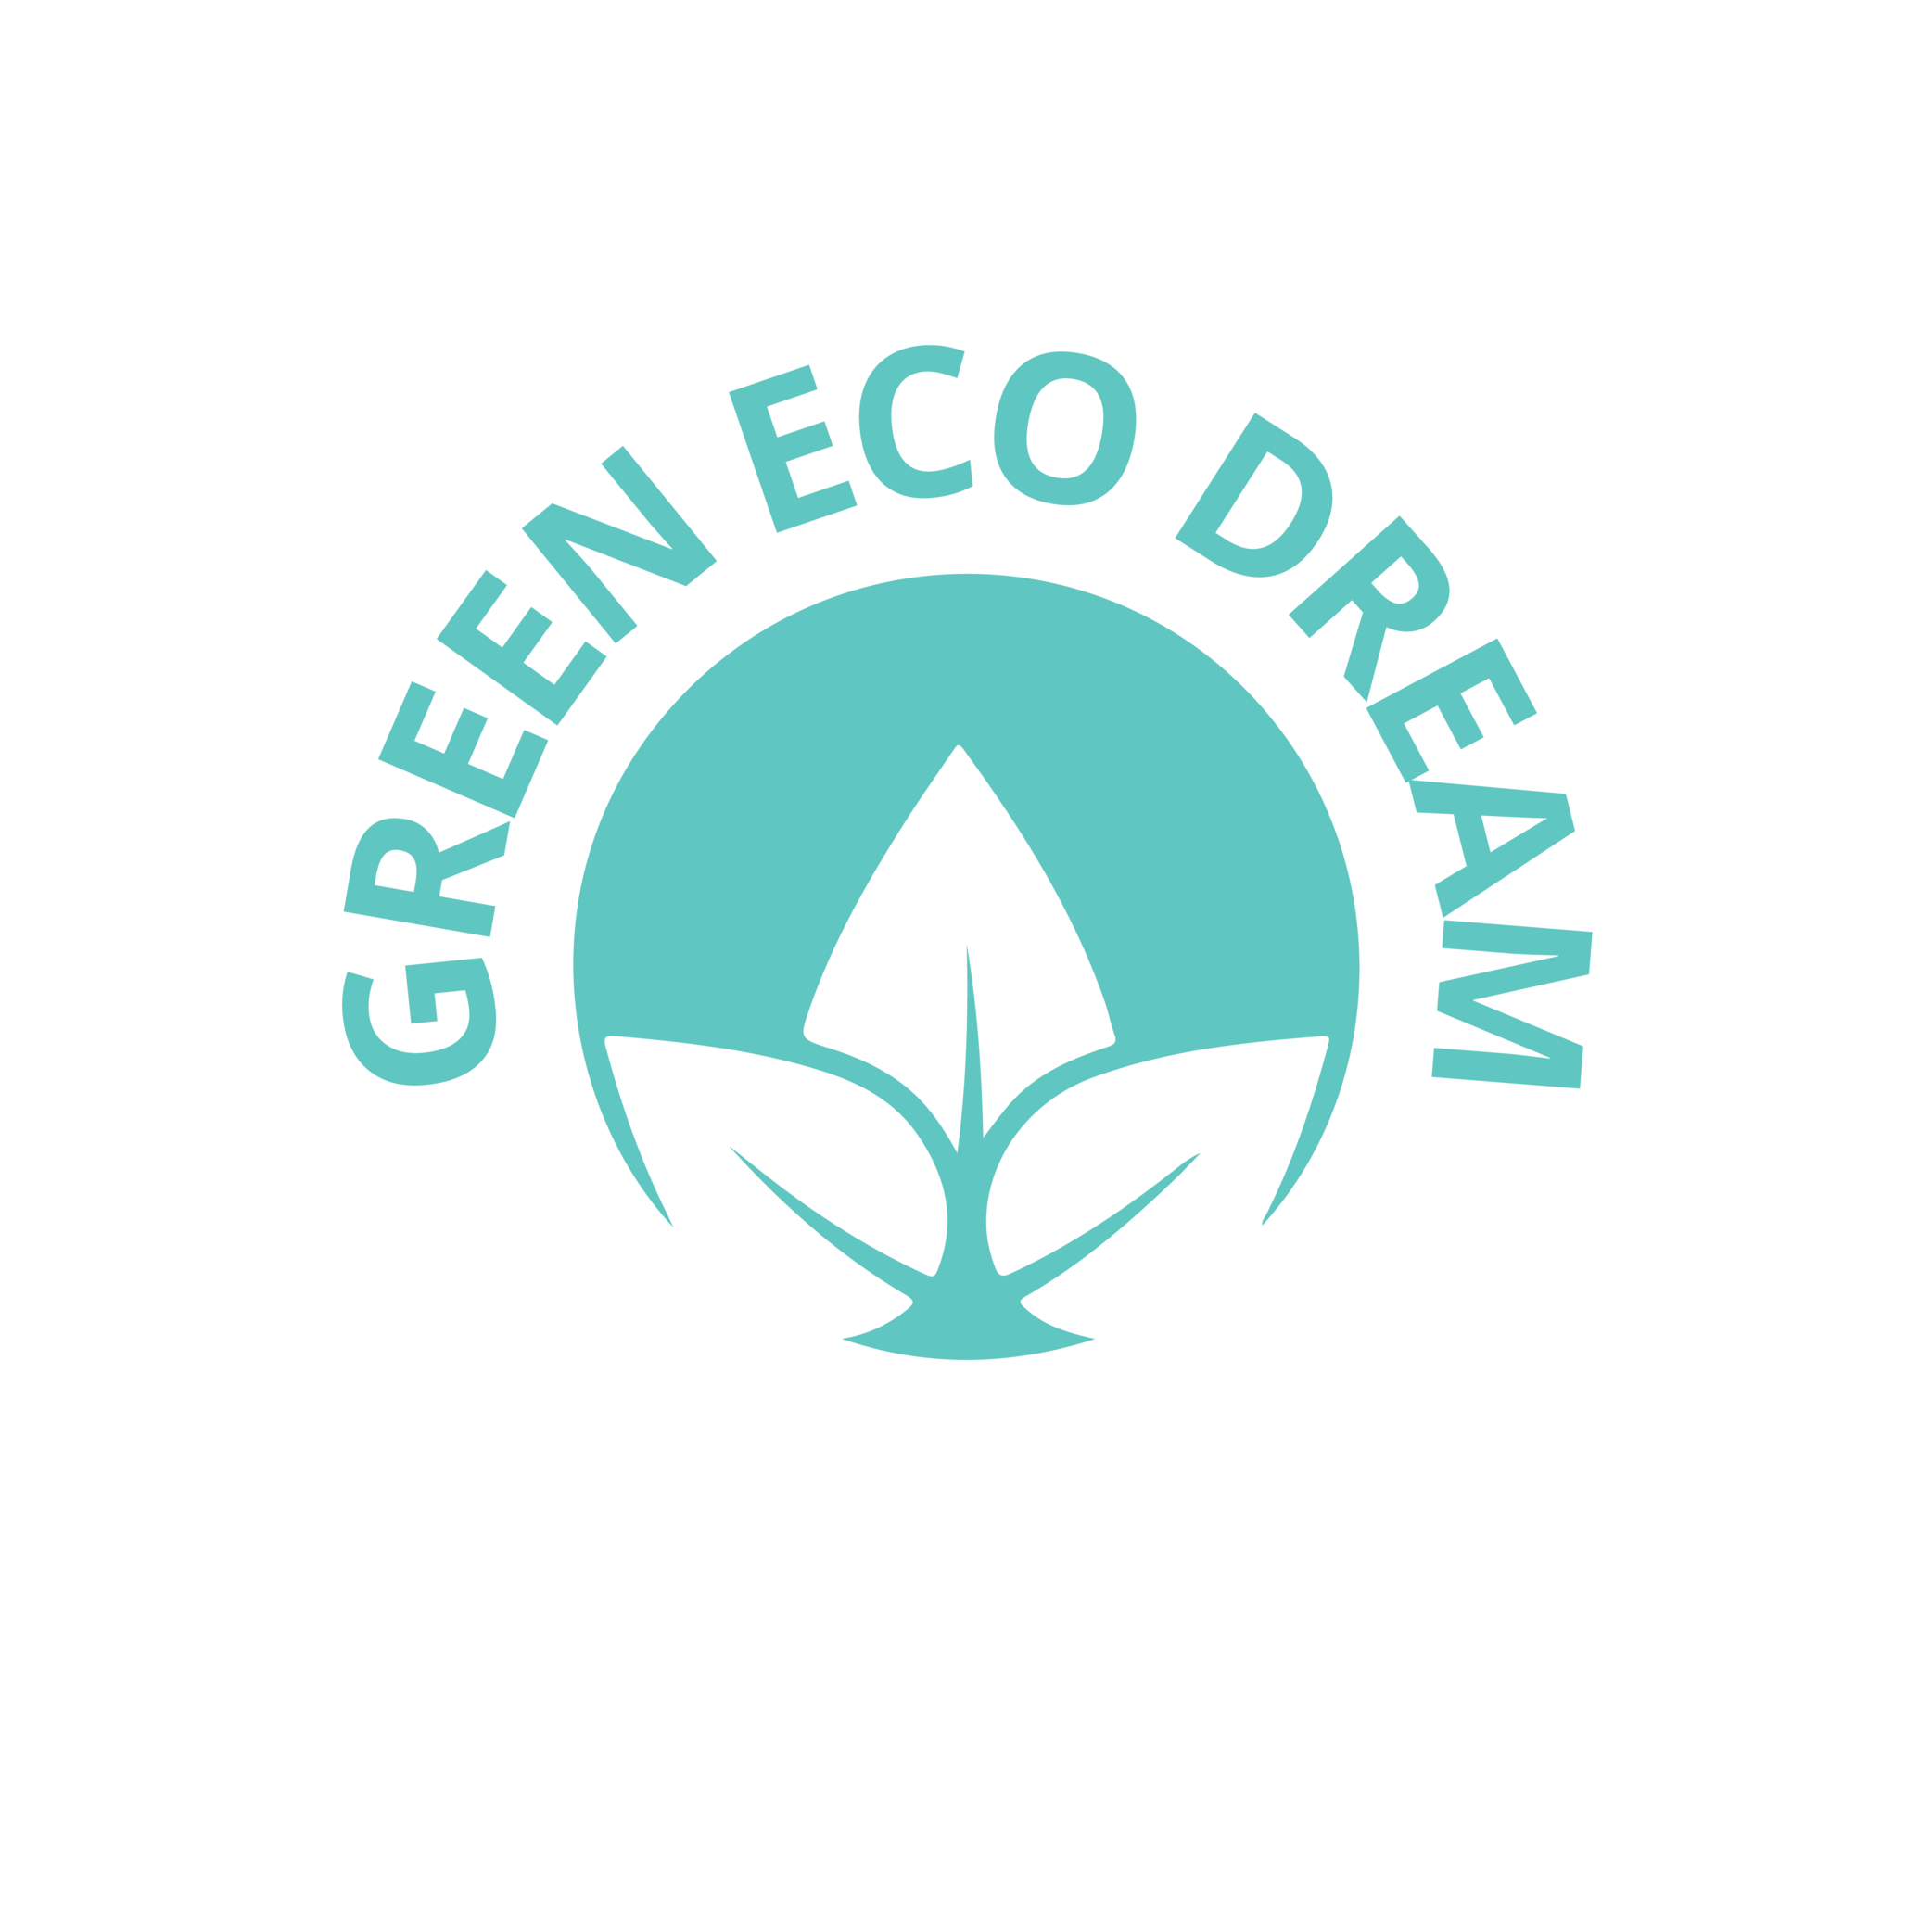 Green Eco Dream Changes the Way People Consume